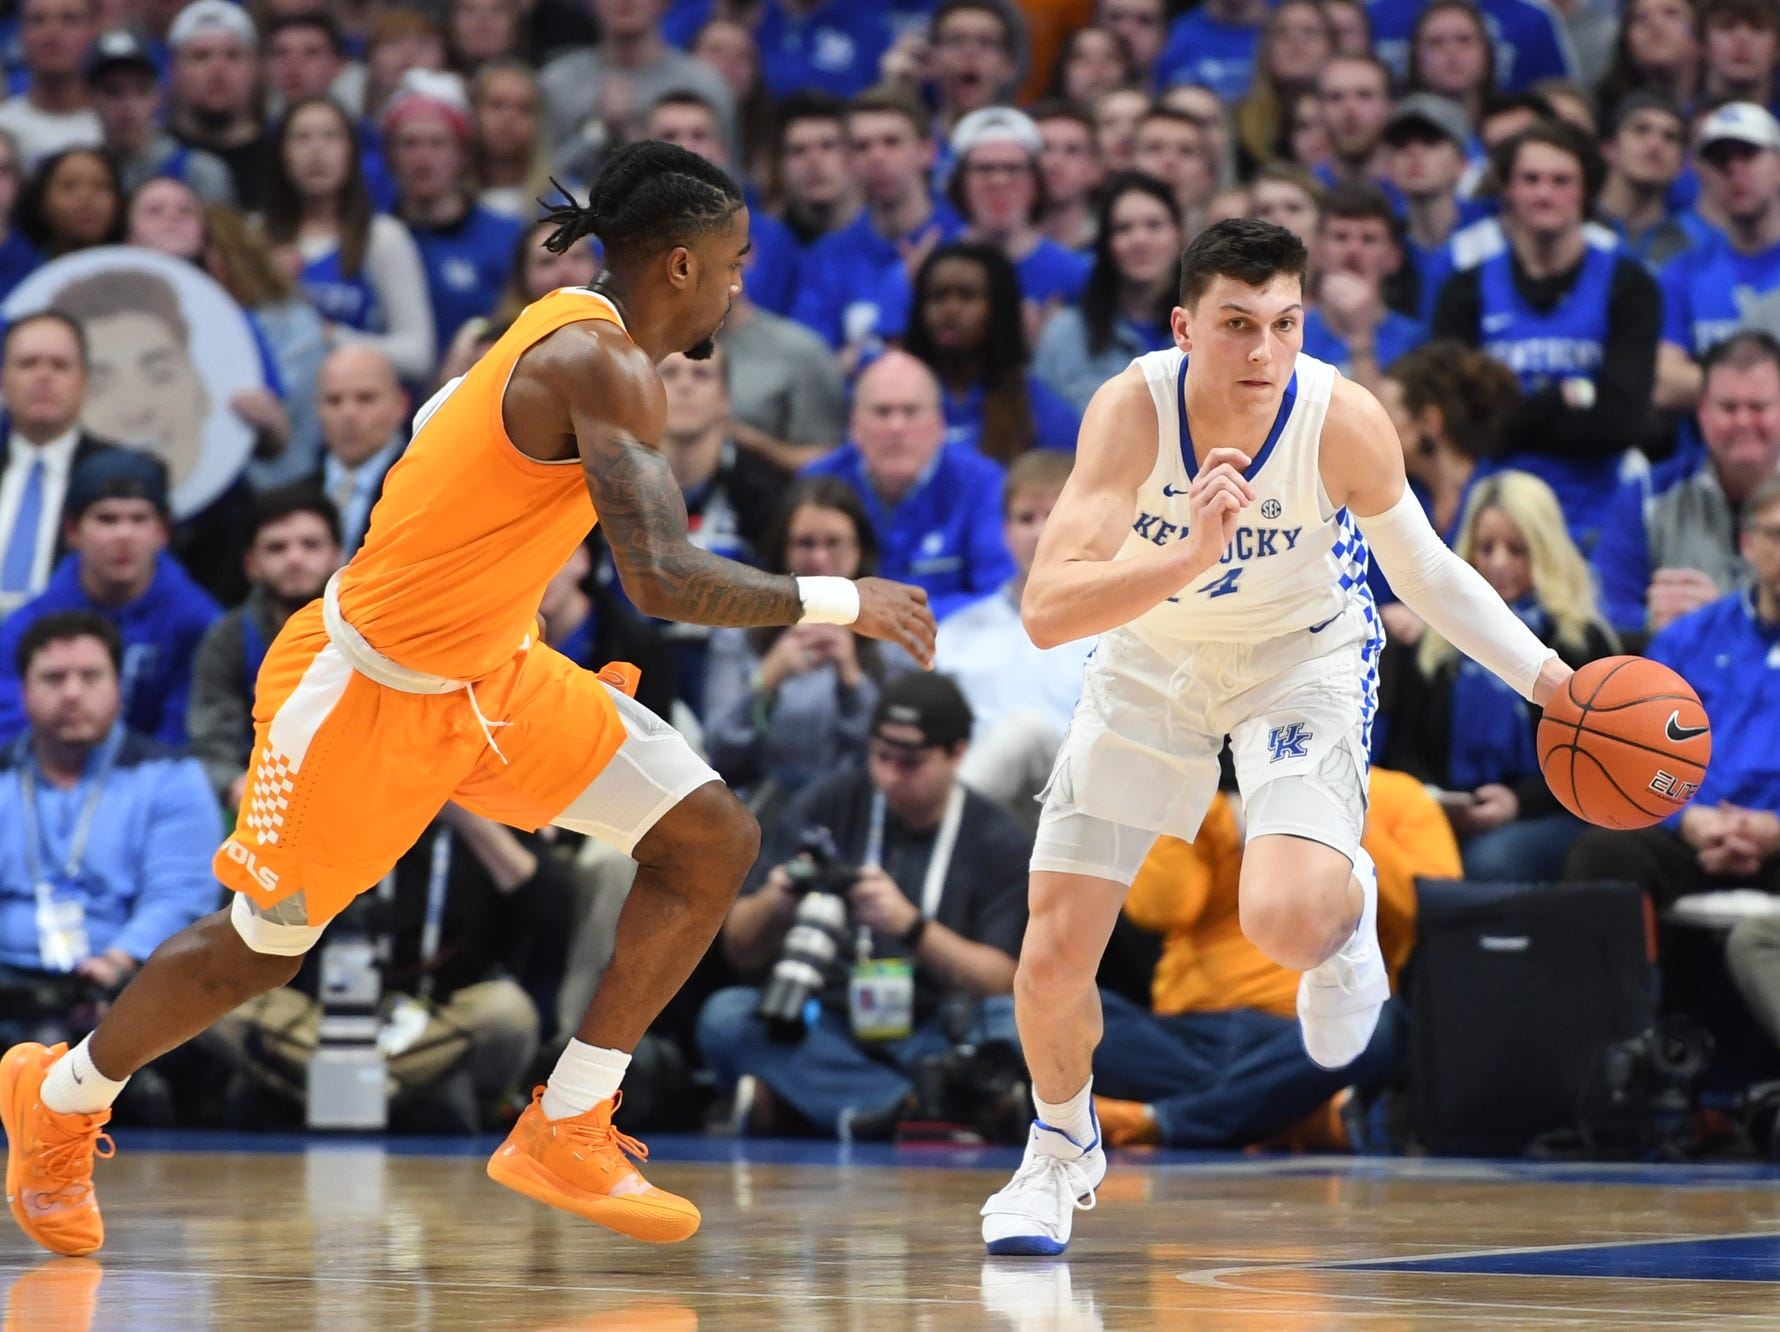 UK G Tyler Herro brings the ball up court during the University of Kentucky mens basketball game against Tennessee at Rupp Arena in Lexington, Kentucky on Saturday, February 16, 2019.